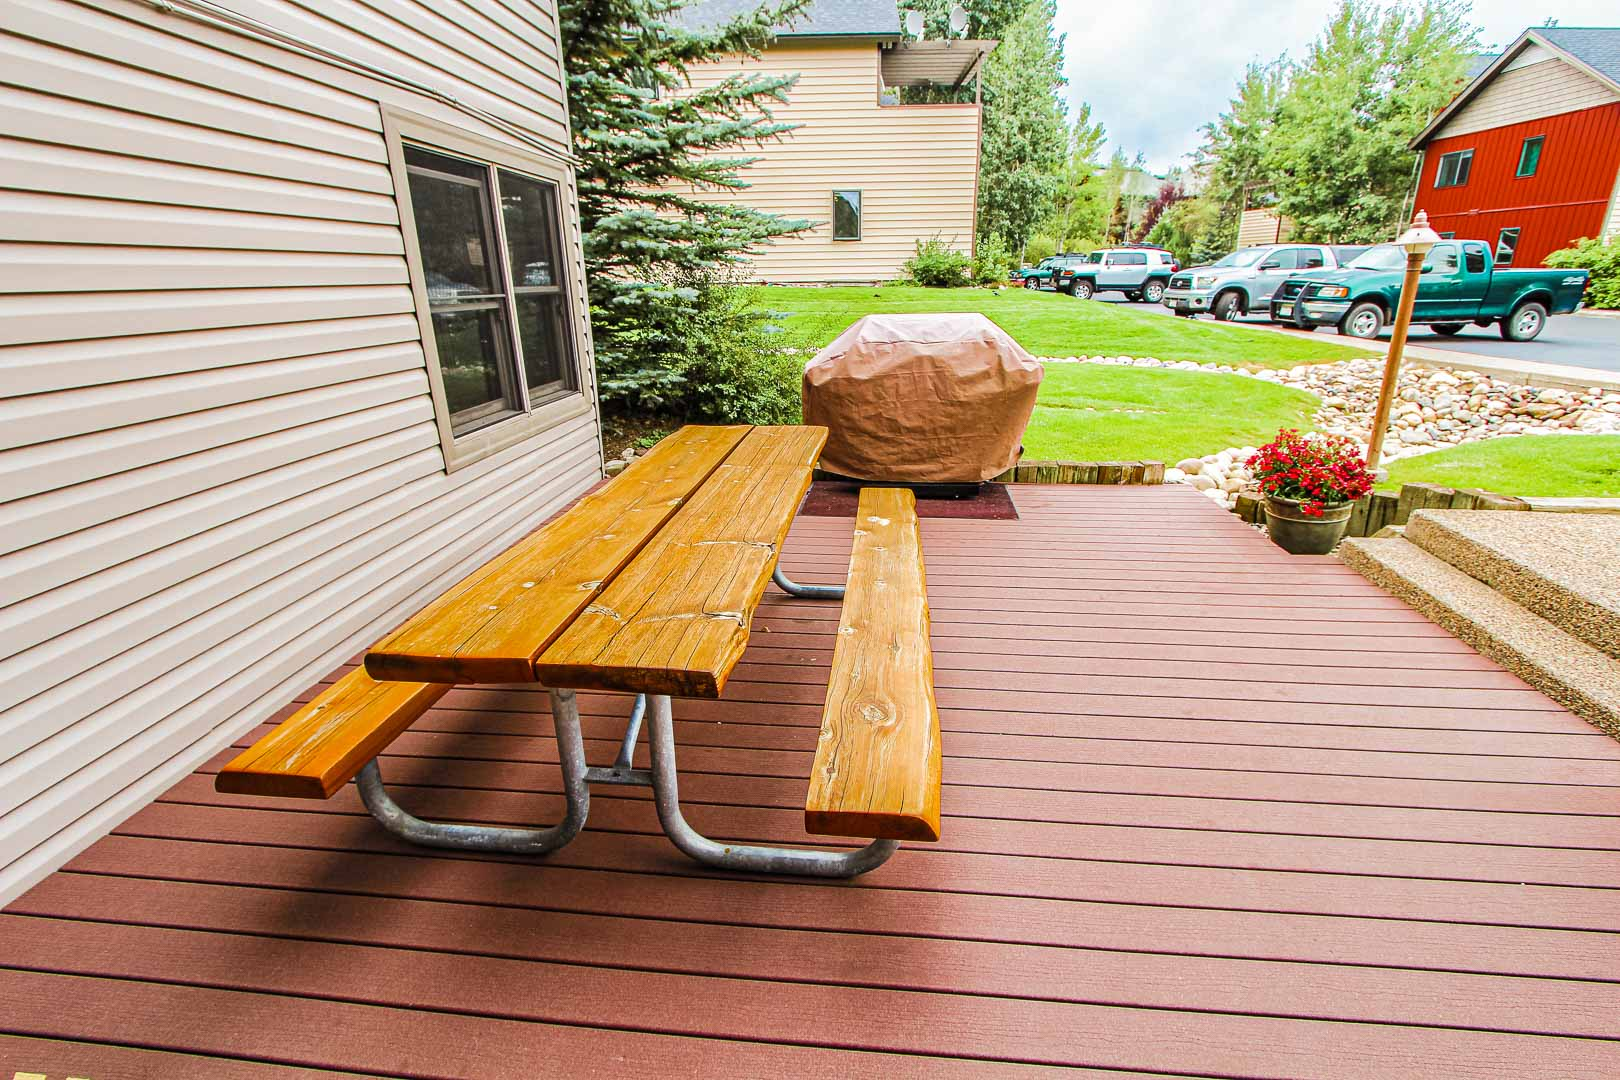 An outside bench area at VRI's Sunburst Resort in Steamboat Springs, Colorado.